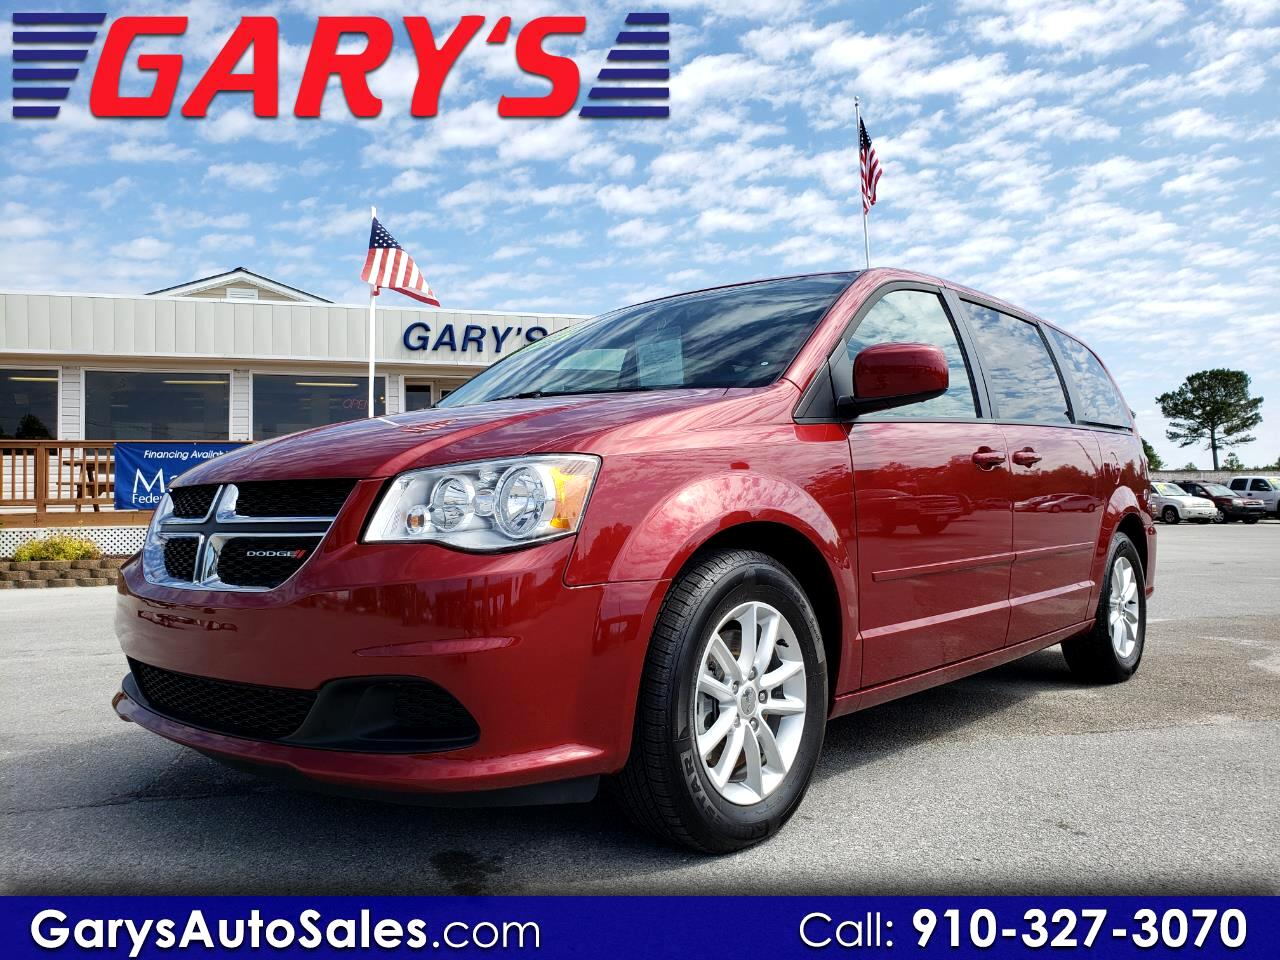 Garys Used Cars >> Used Cars For Sale Gary S Auto Sales